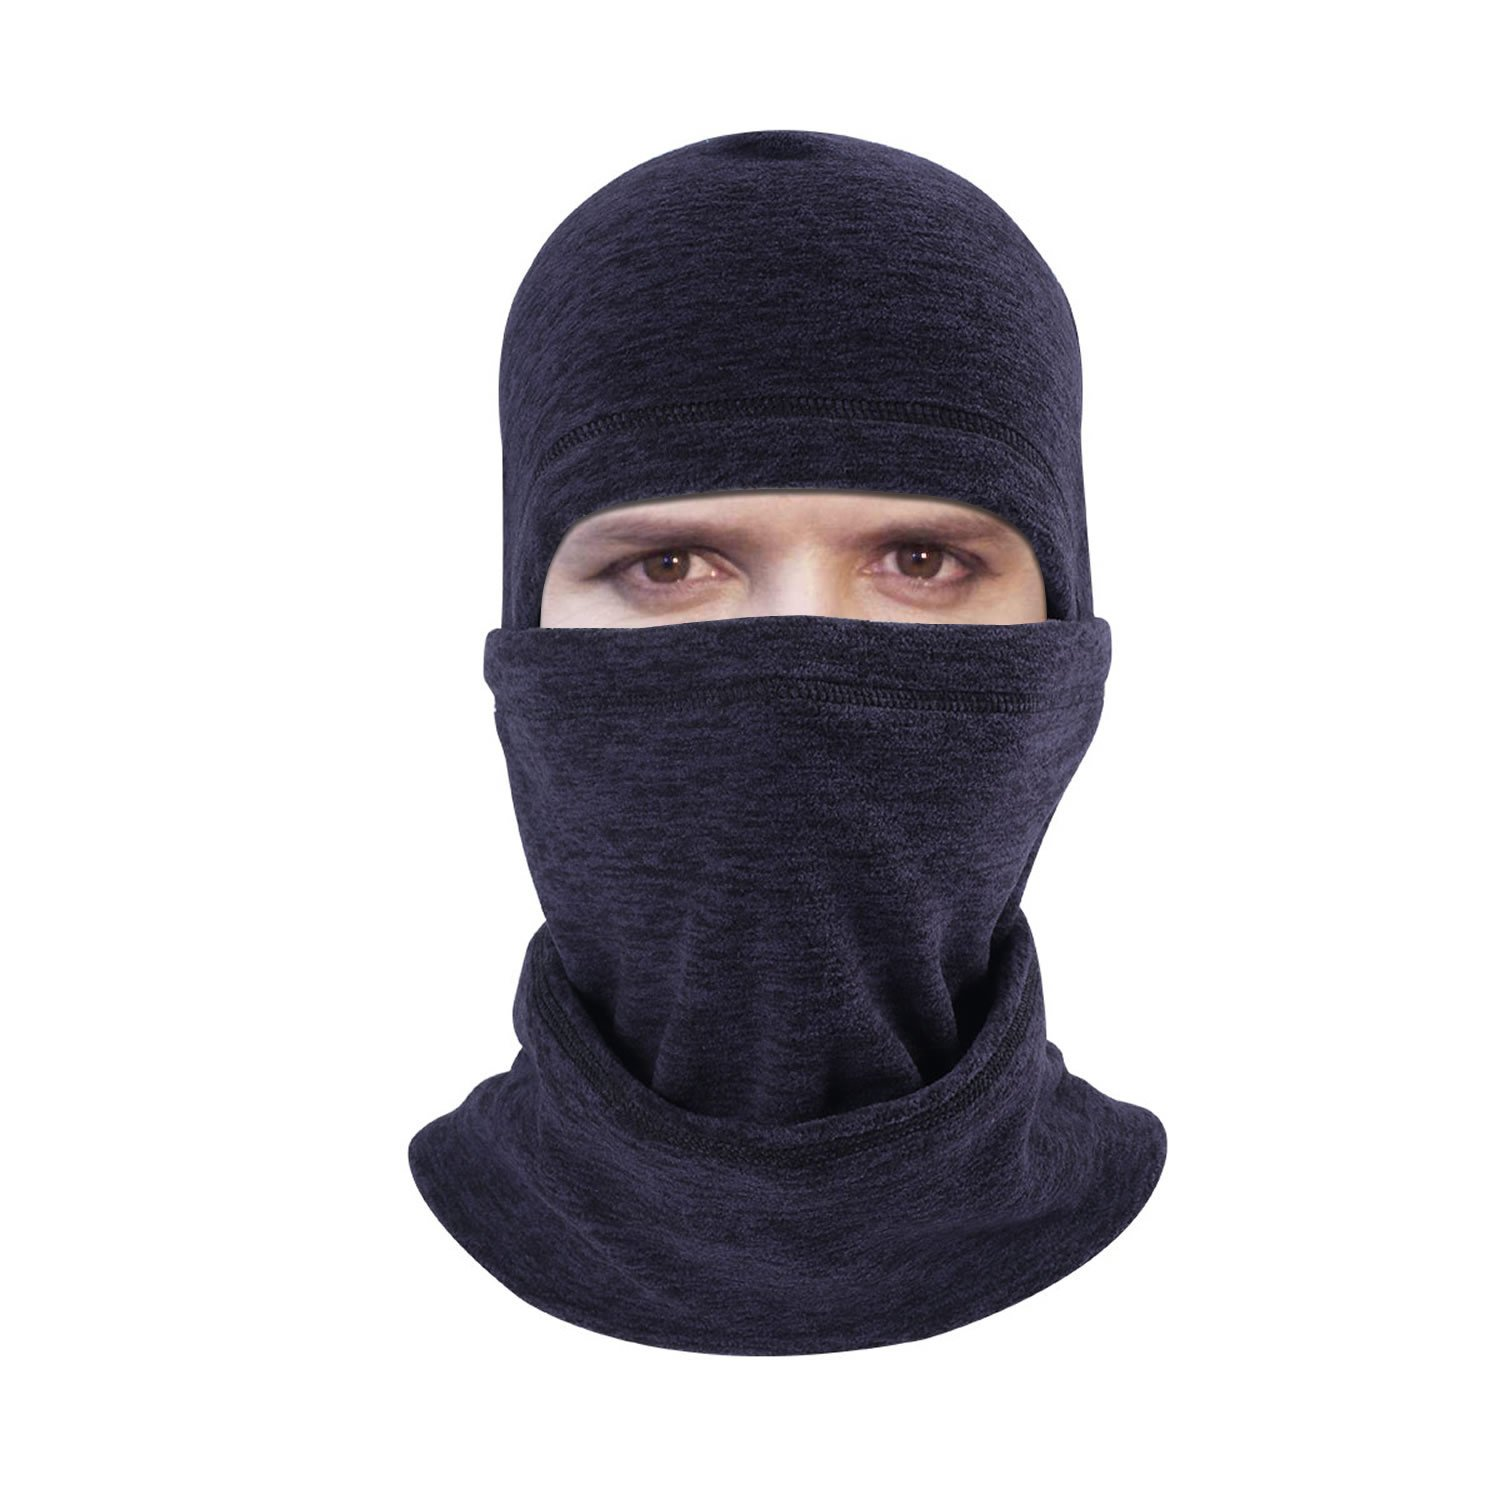 Balaclava - Windproof Ski Mask - Face Mask Motorcycle Neck Warmer Tactical Balaclava Hood - Ultimate Thermal Retention Cycling